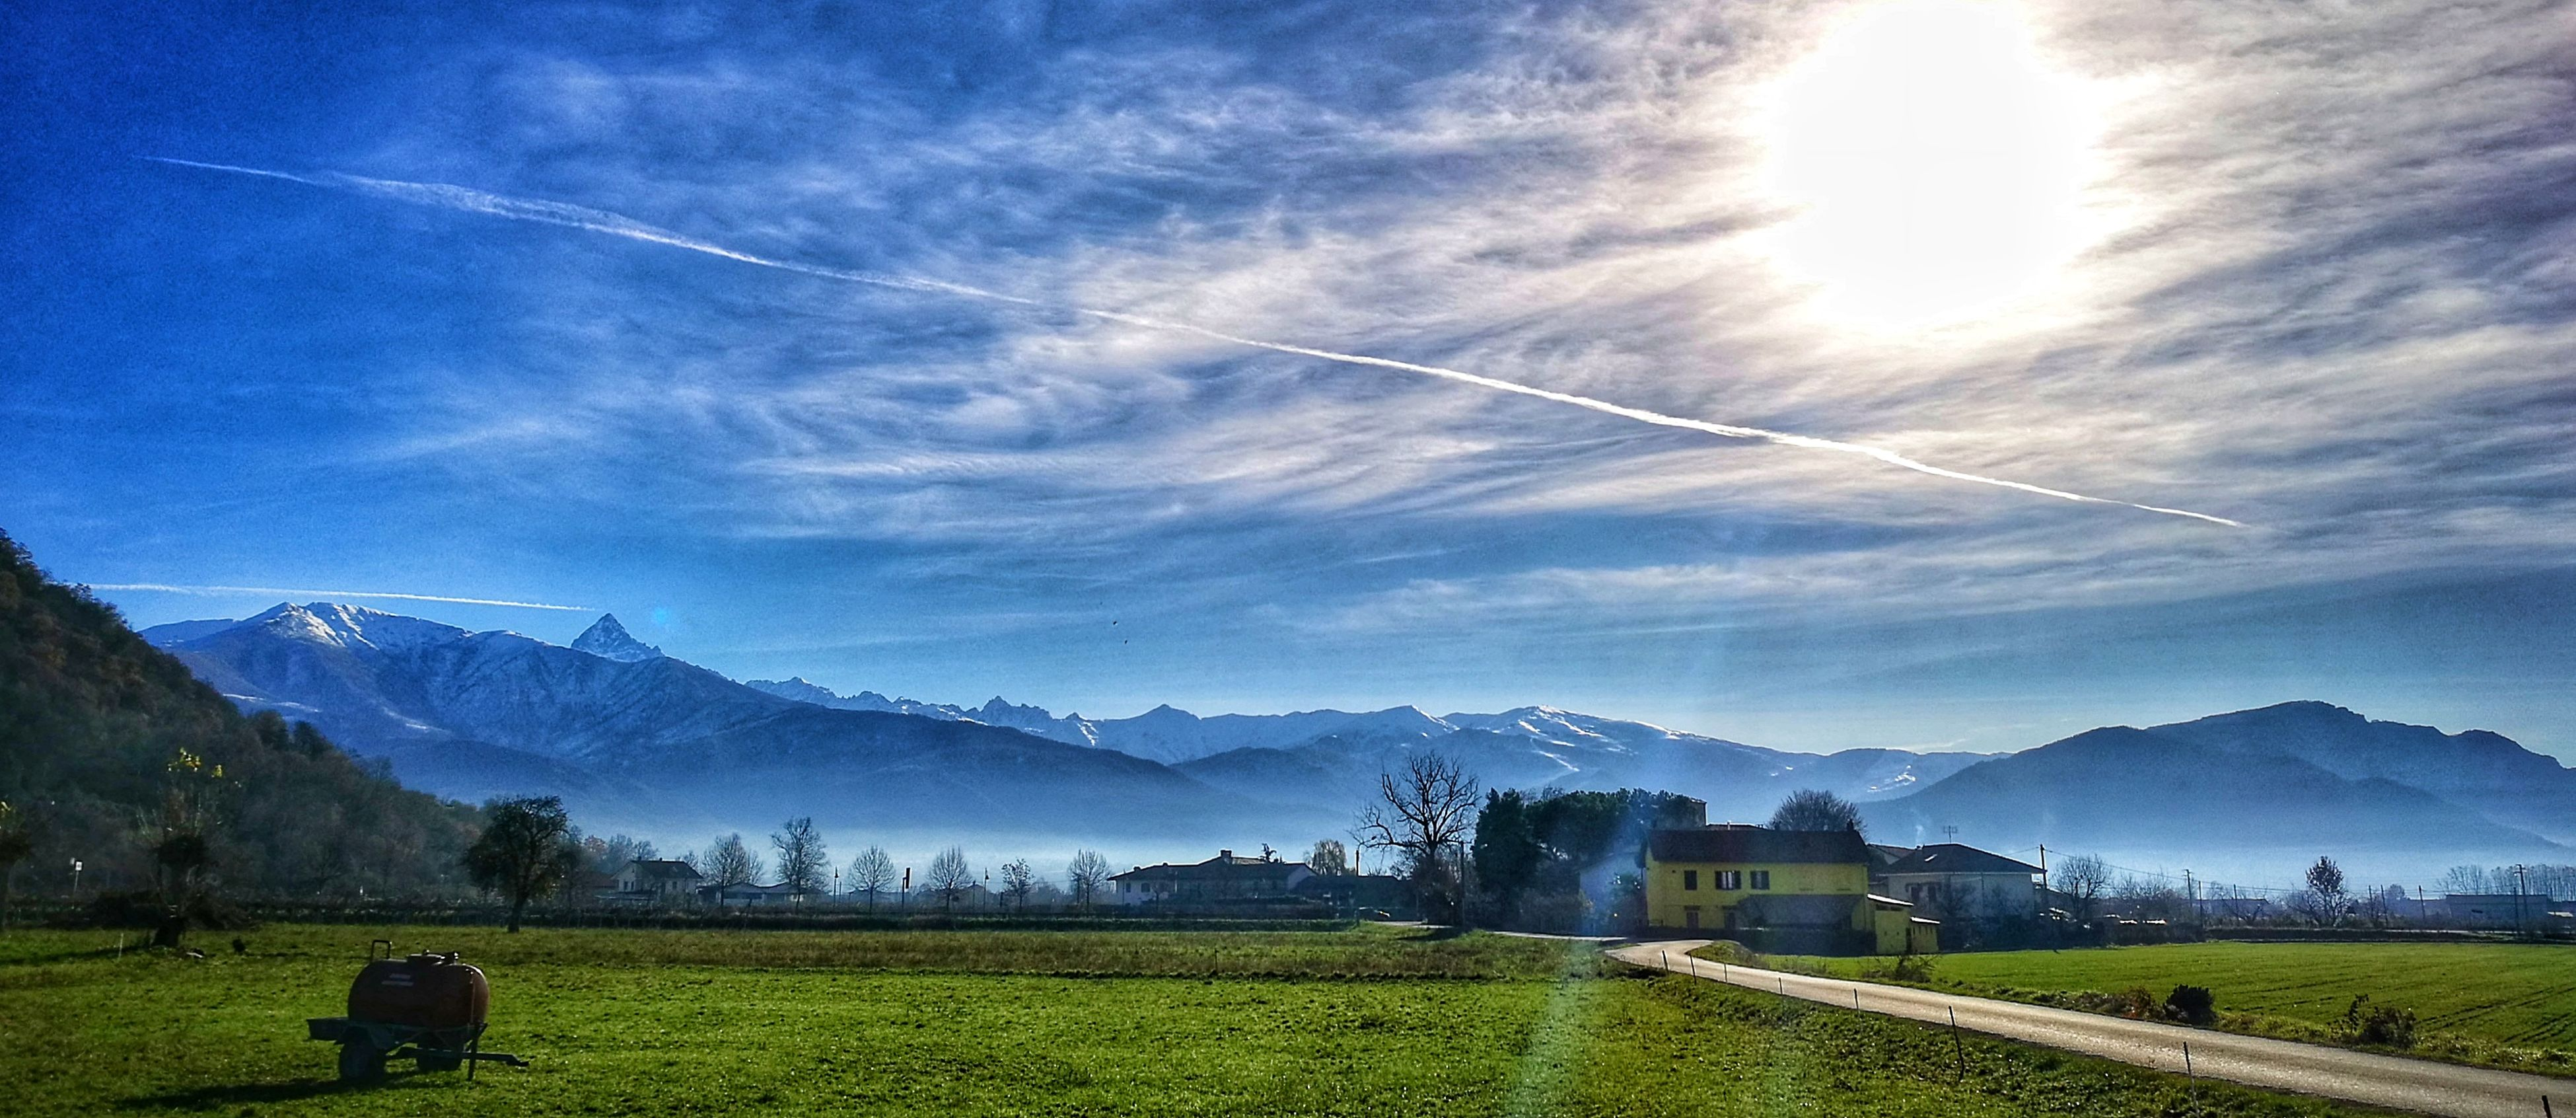 sky, blue, landscape, grass, nature, mountain, scenics, cloud - sky, tree, beauty in nature, outdoors, no people, tranquil scene, night, architecture